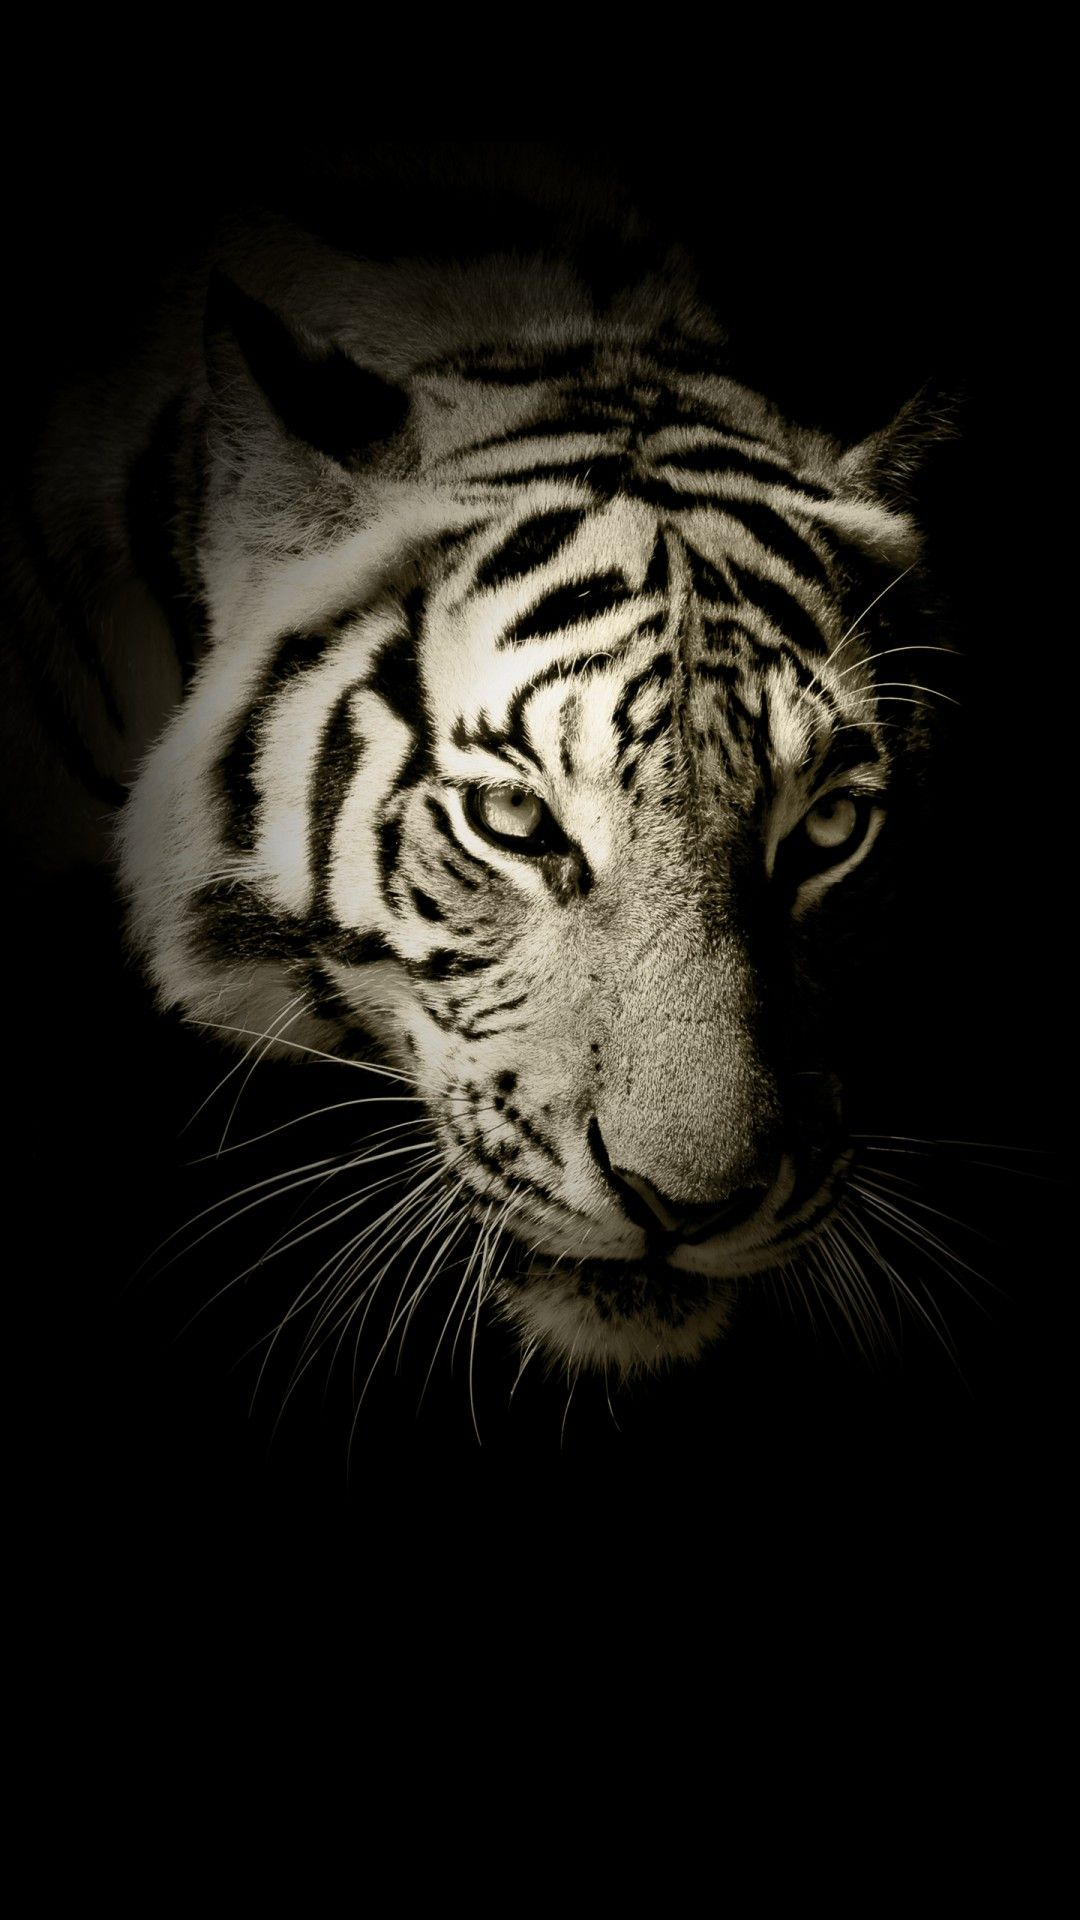 Black And White Tiger Phone Wallpaper In 2020 Tiger Quotes Animal Wallpaper Beast Quotes